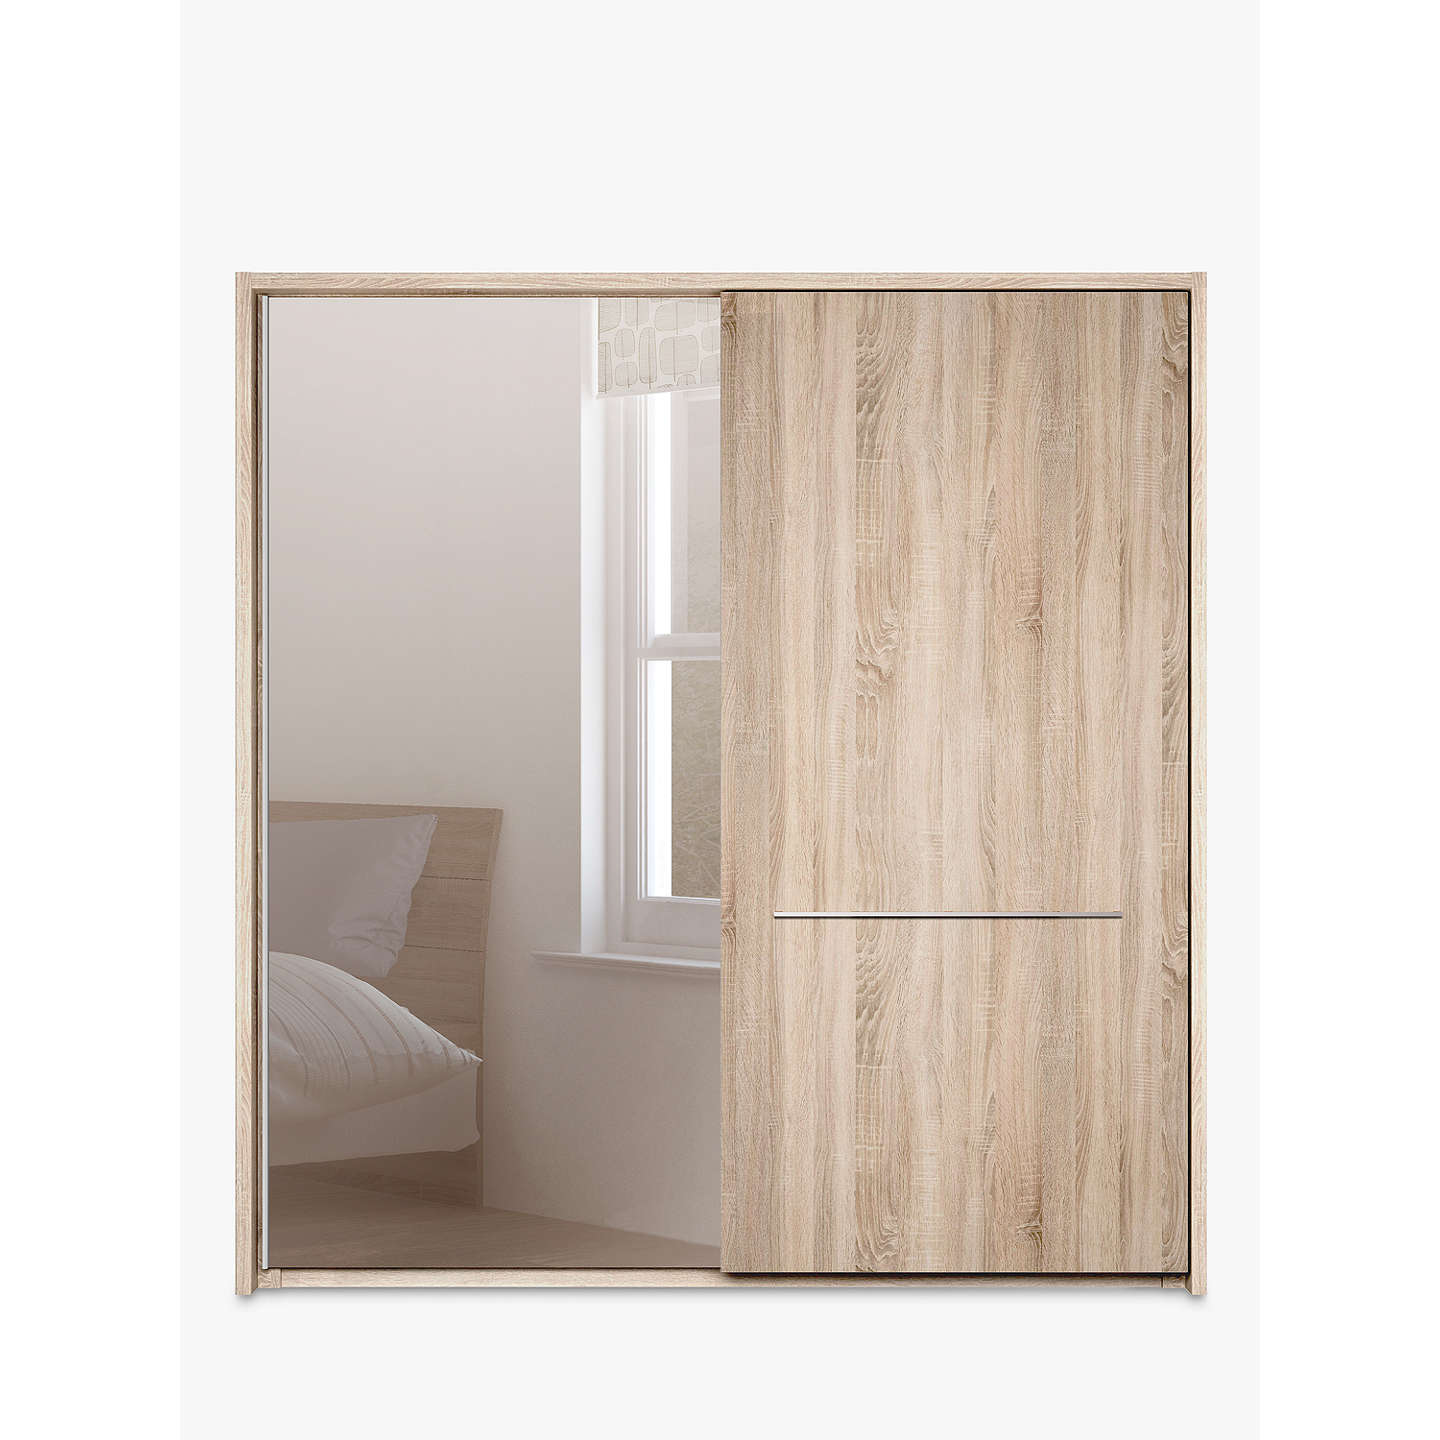 John Lewis Treviso 200cm Wardrobe With Rustic Oak And